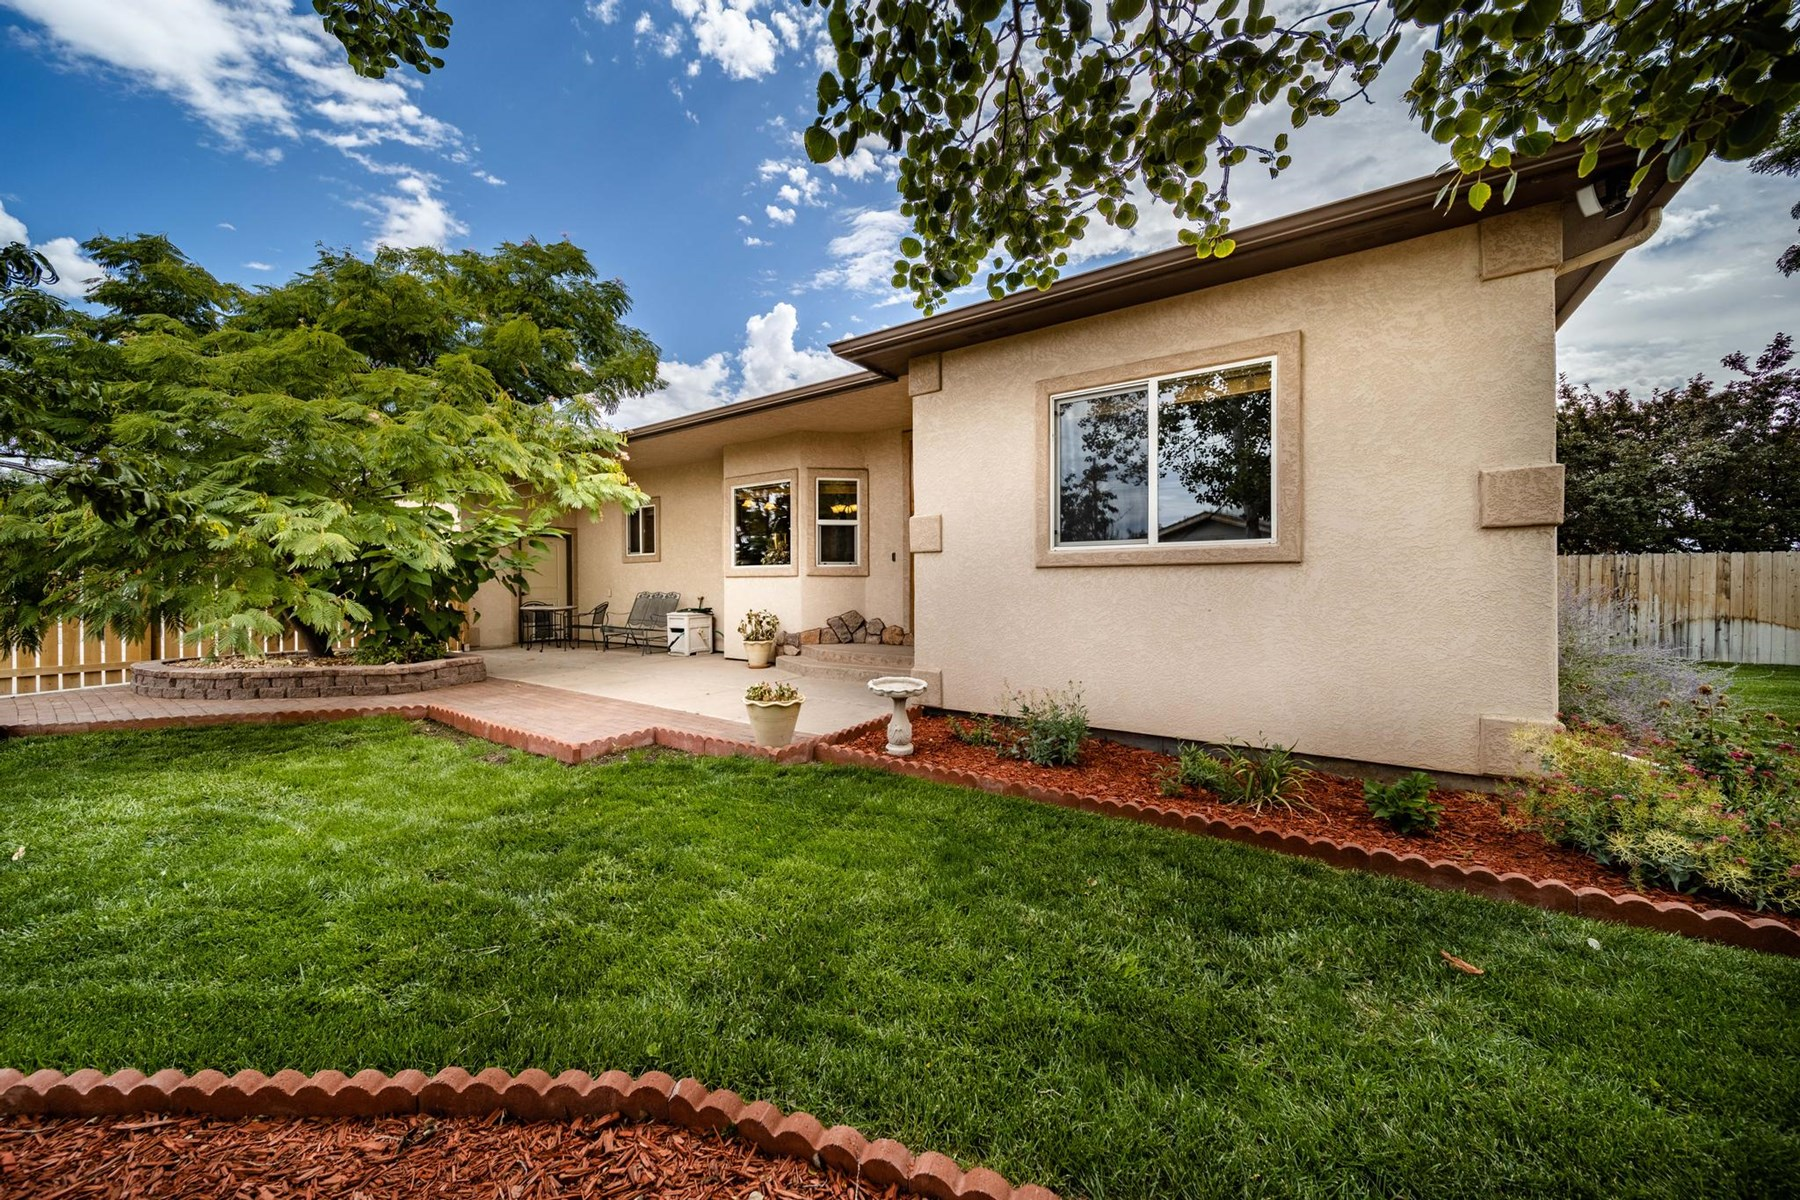 Colorado Tuscan Style Home For Sale With Pool